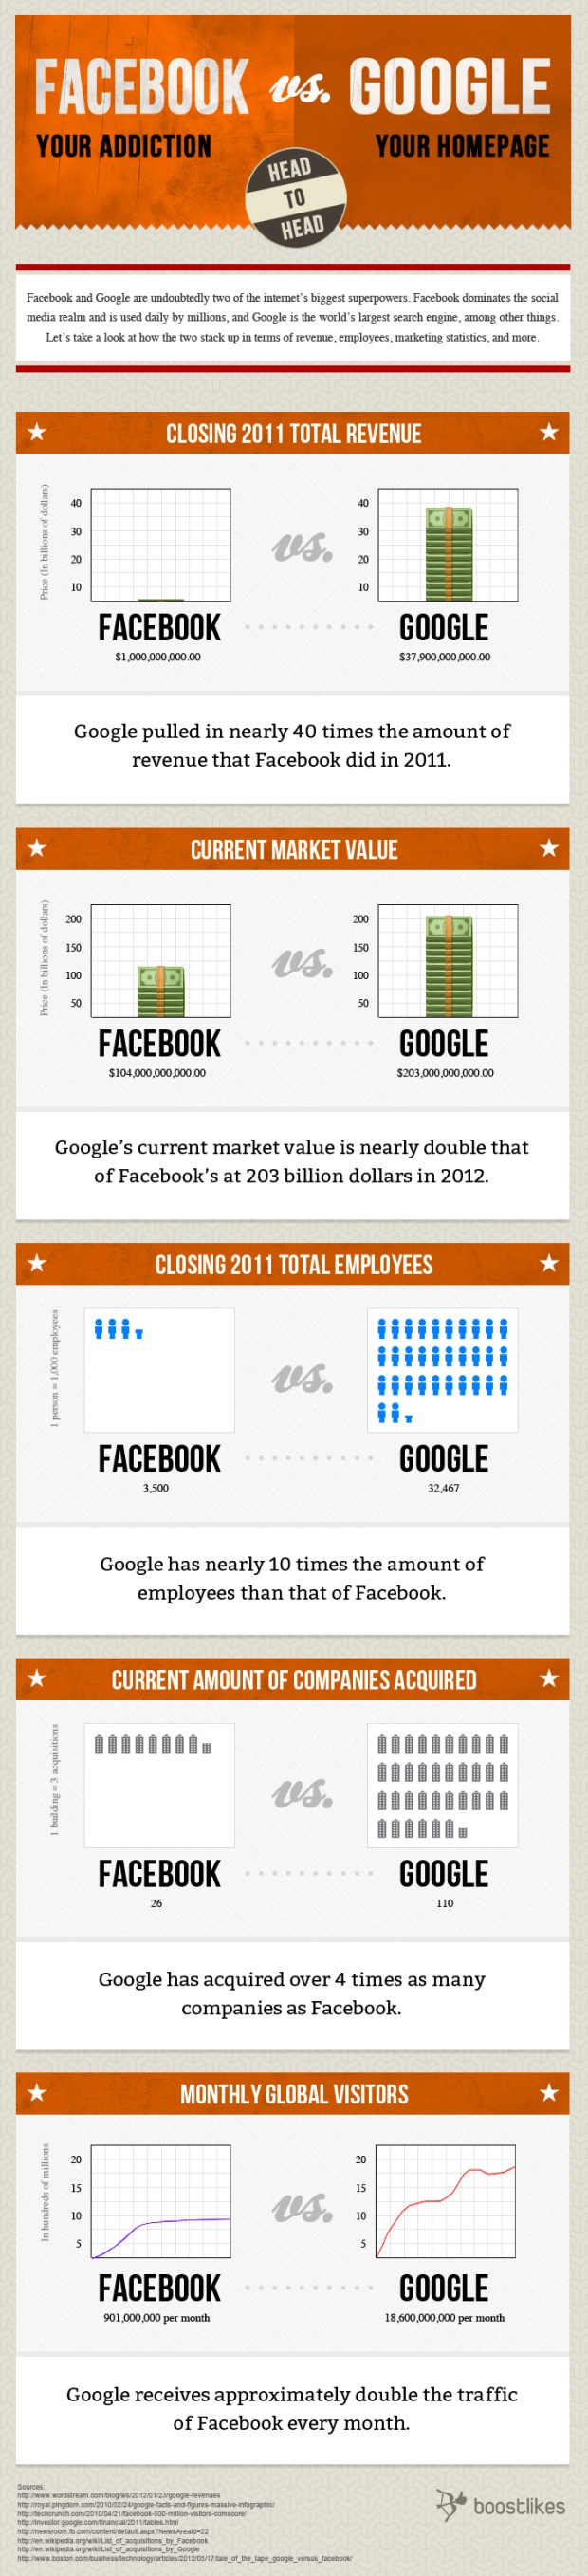 facebook-vs-google 2012